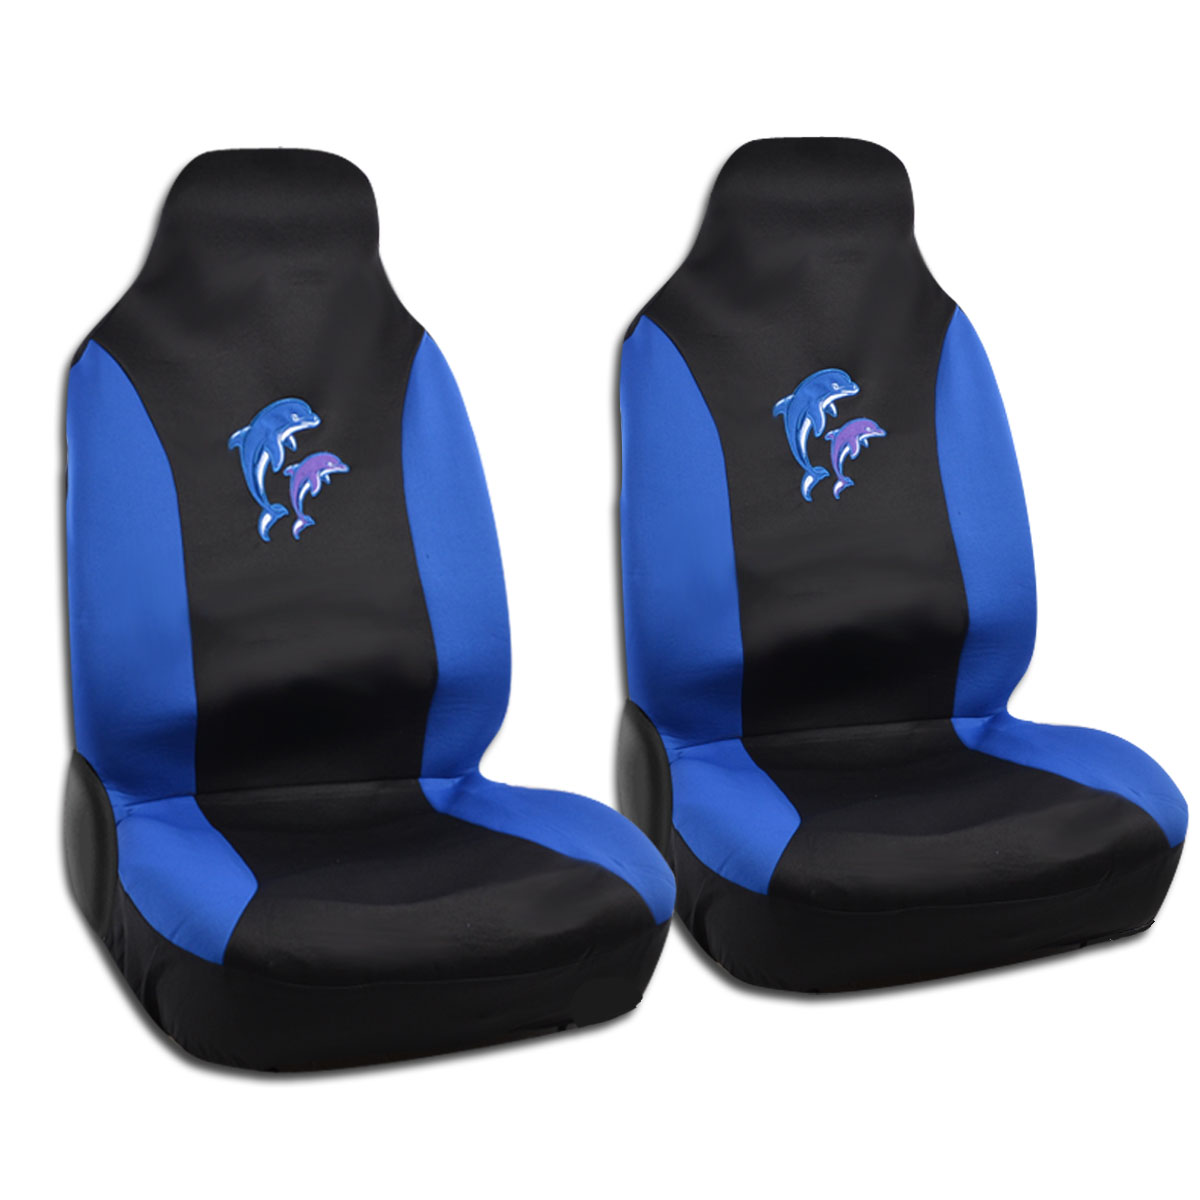 Highback Bucket Car Seat Covers Dolphin Black W Blue